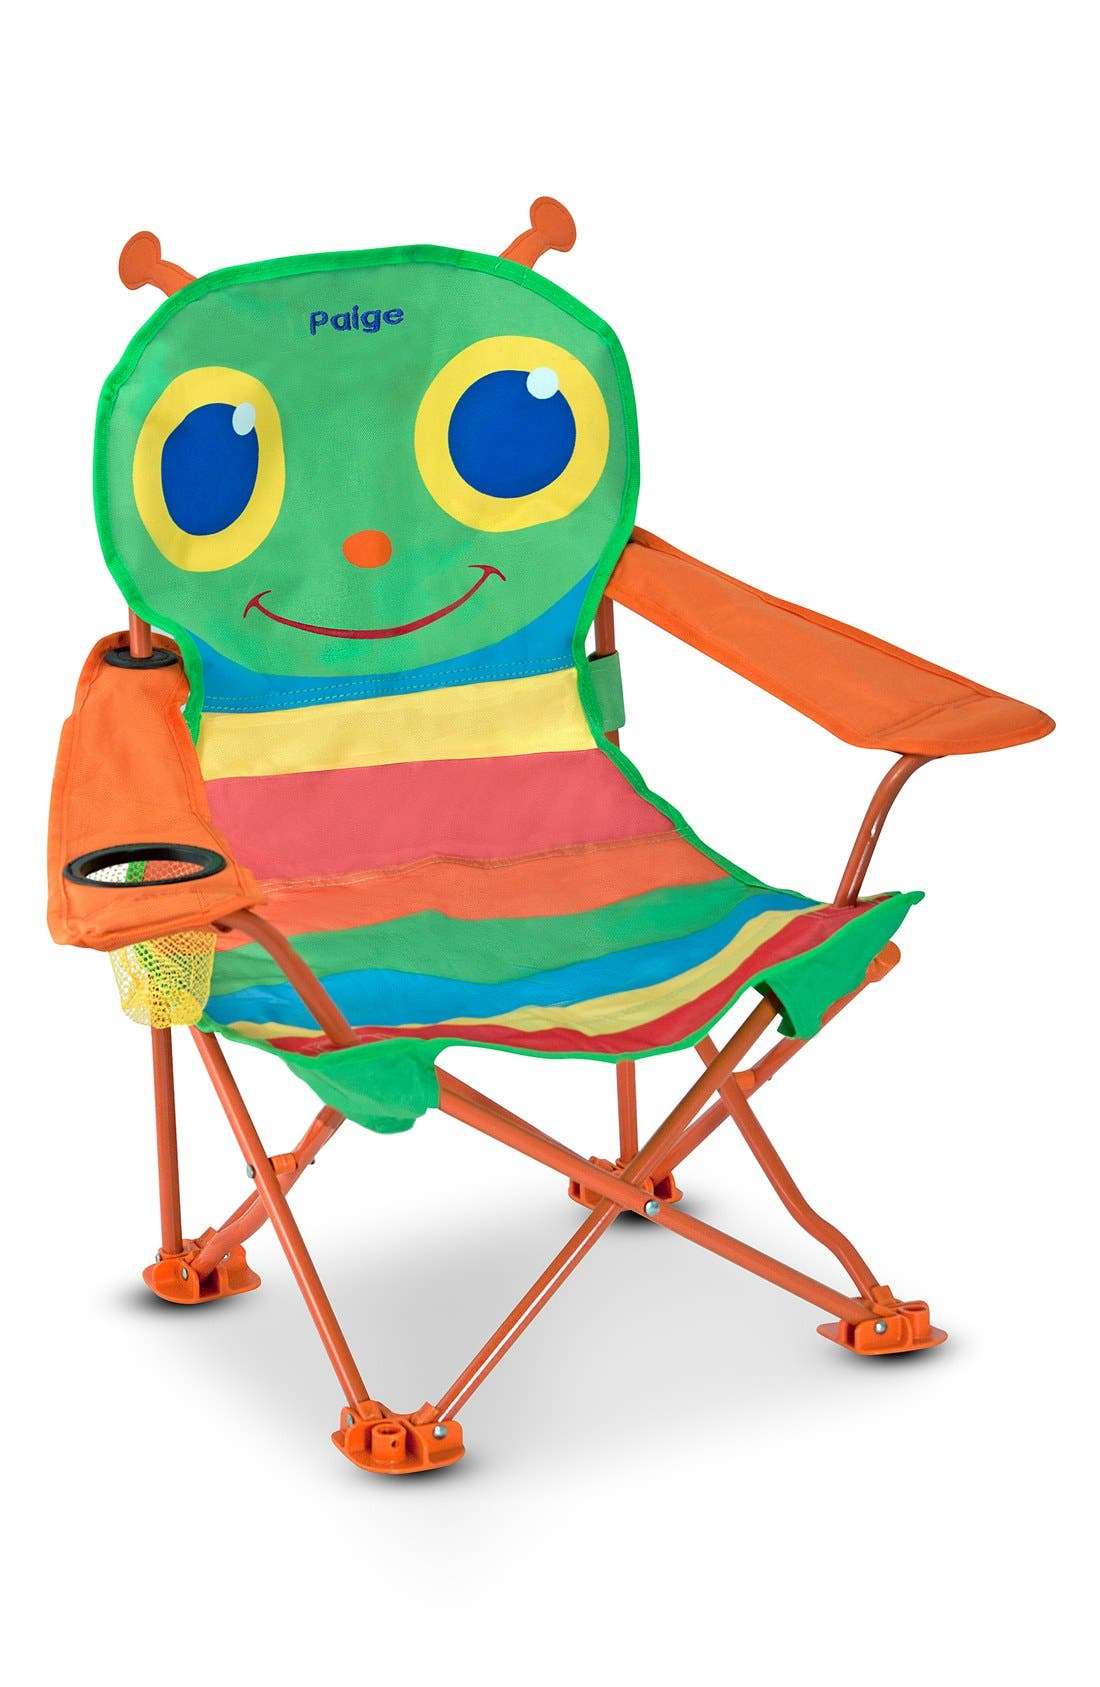 Main Image - Melissa & Doug 'Happy Giddy' Personalized Folding Chair